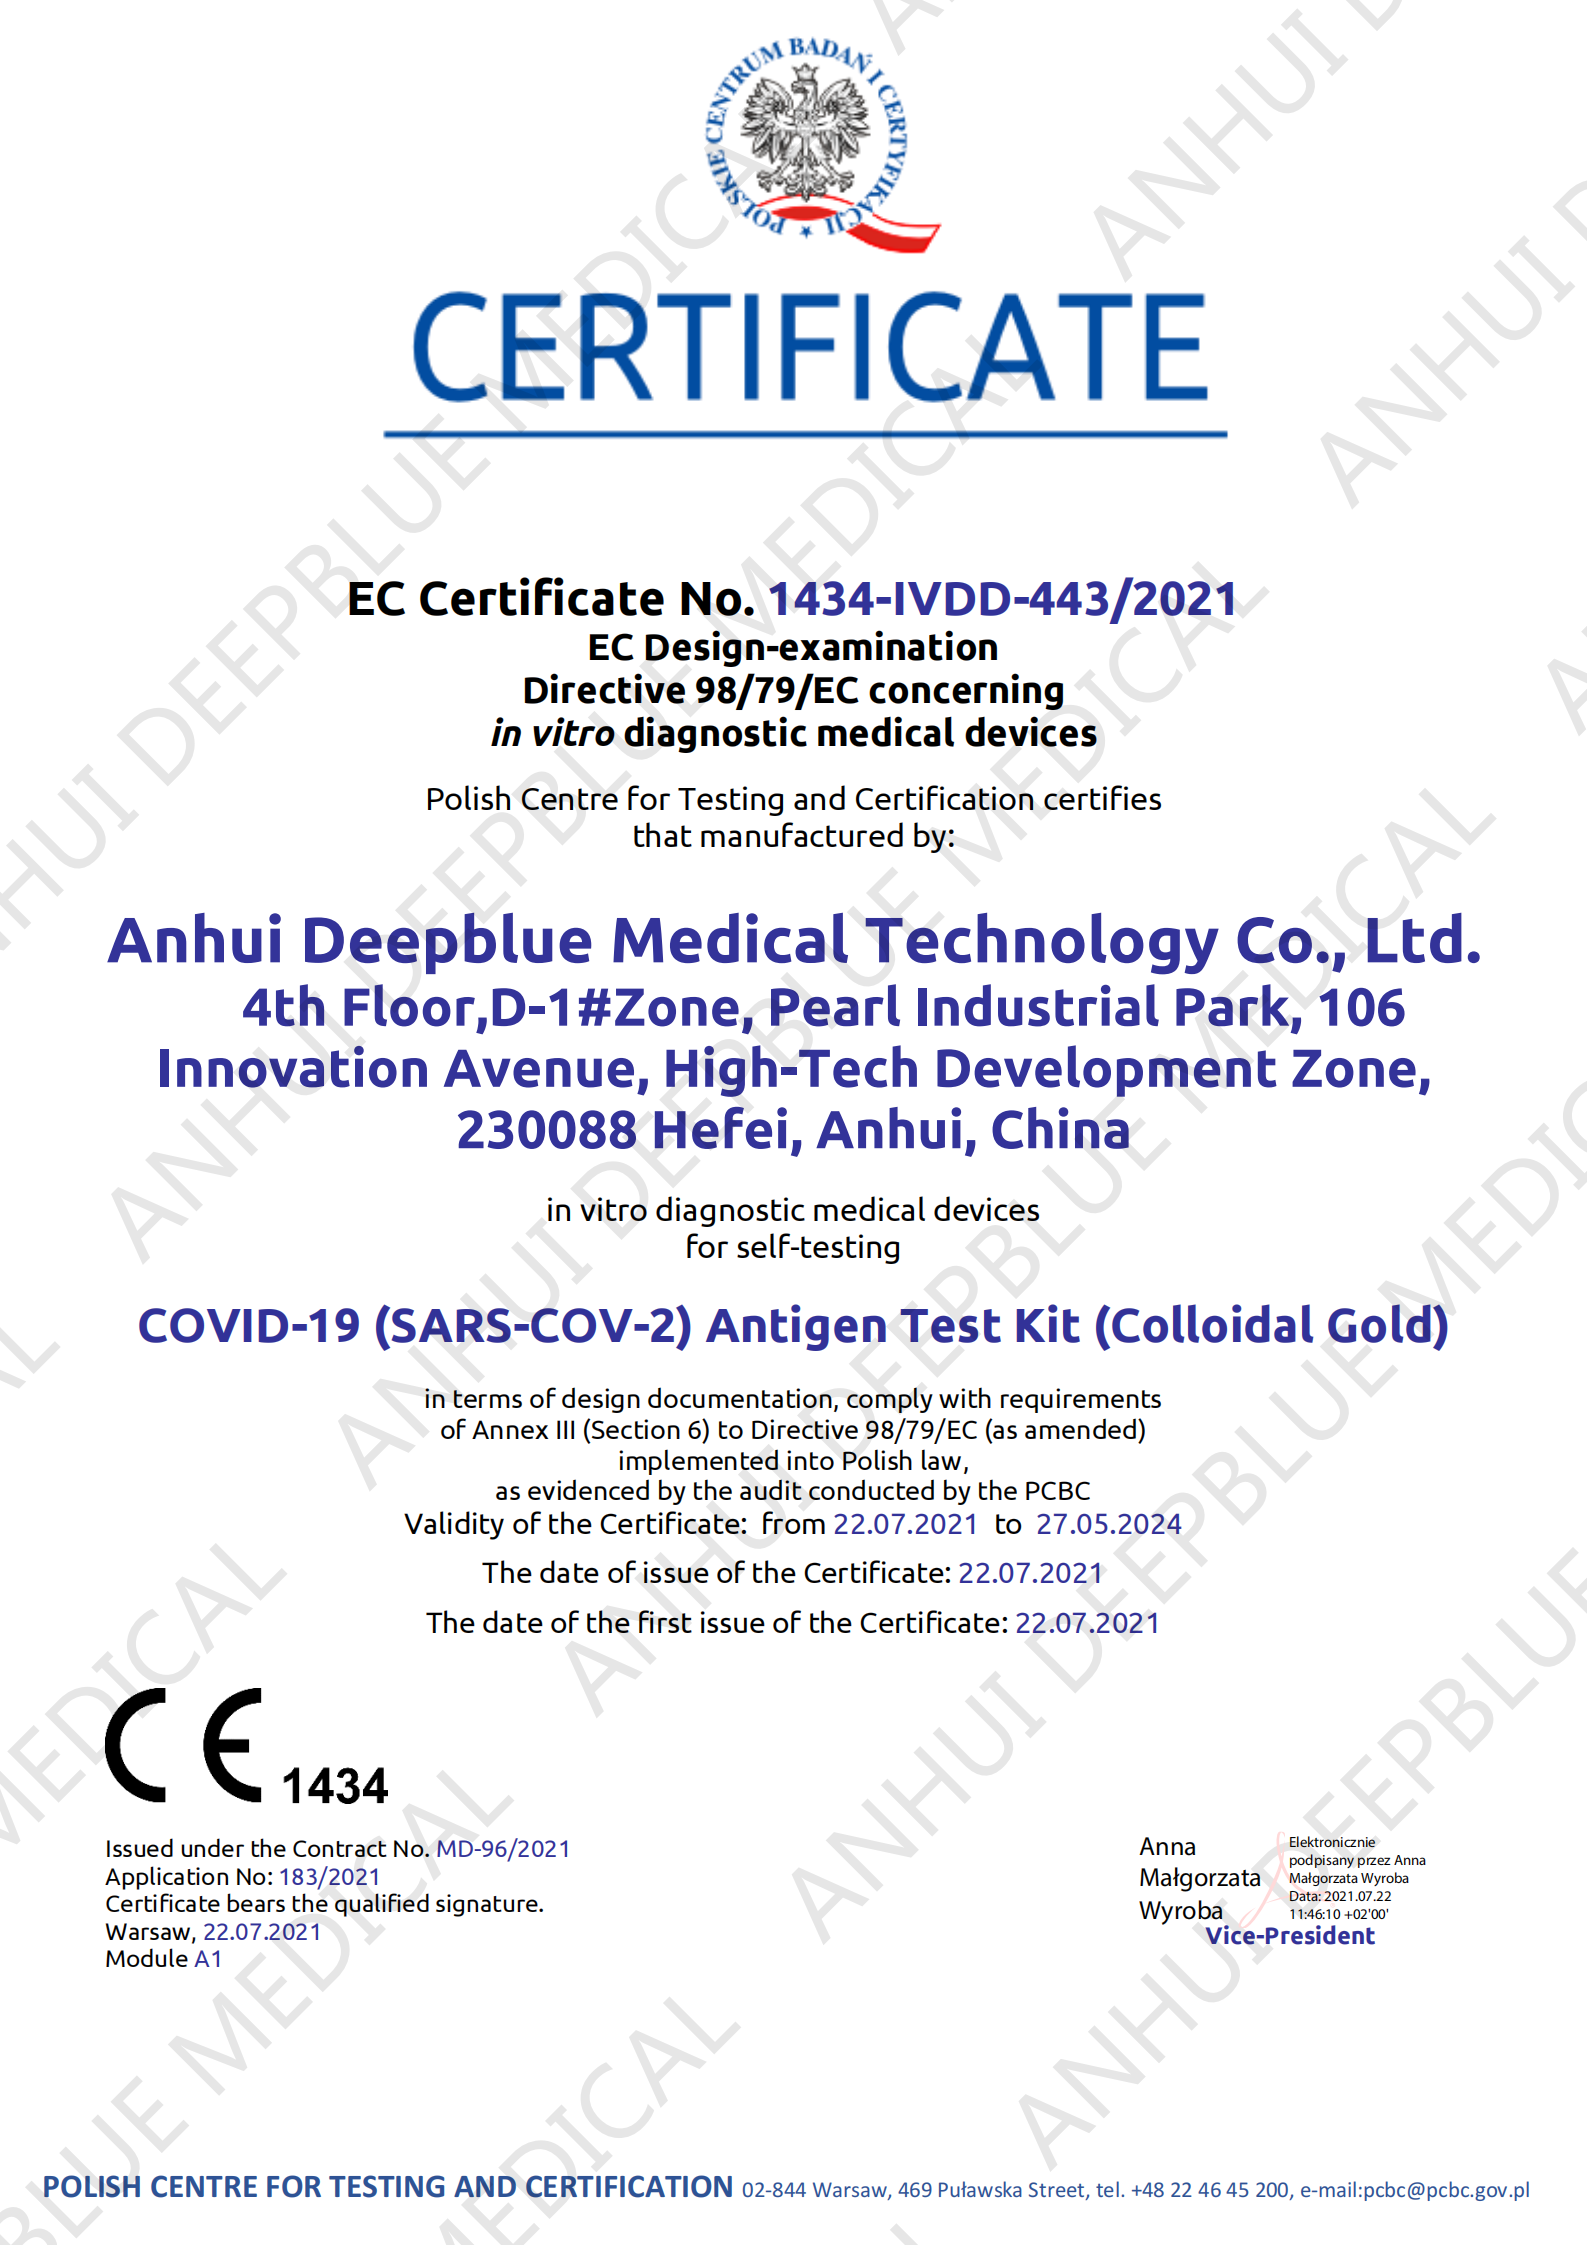 Breaking News! DEEPBLUE COVID-19 Antigen Test obtained the CE1434 Certificate for Self Testing!